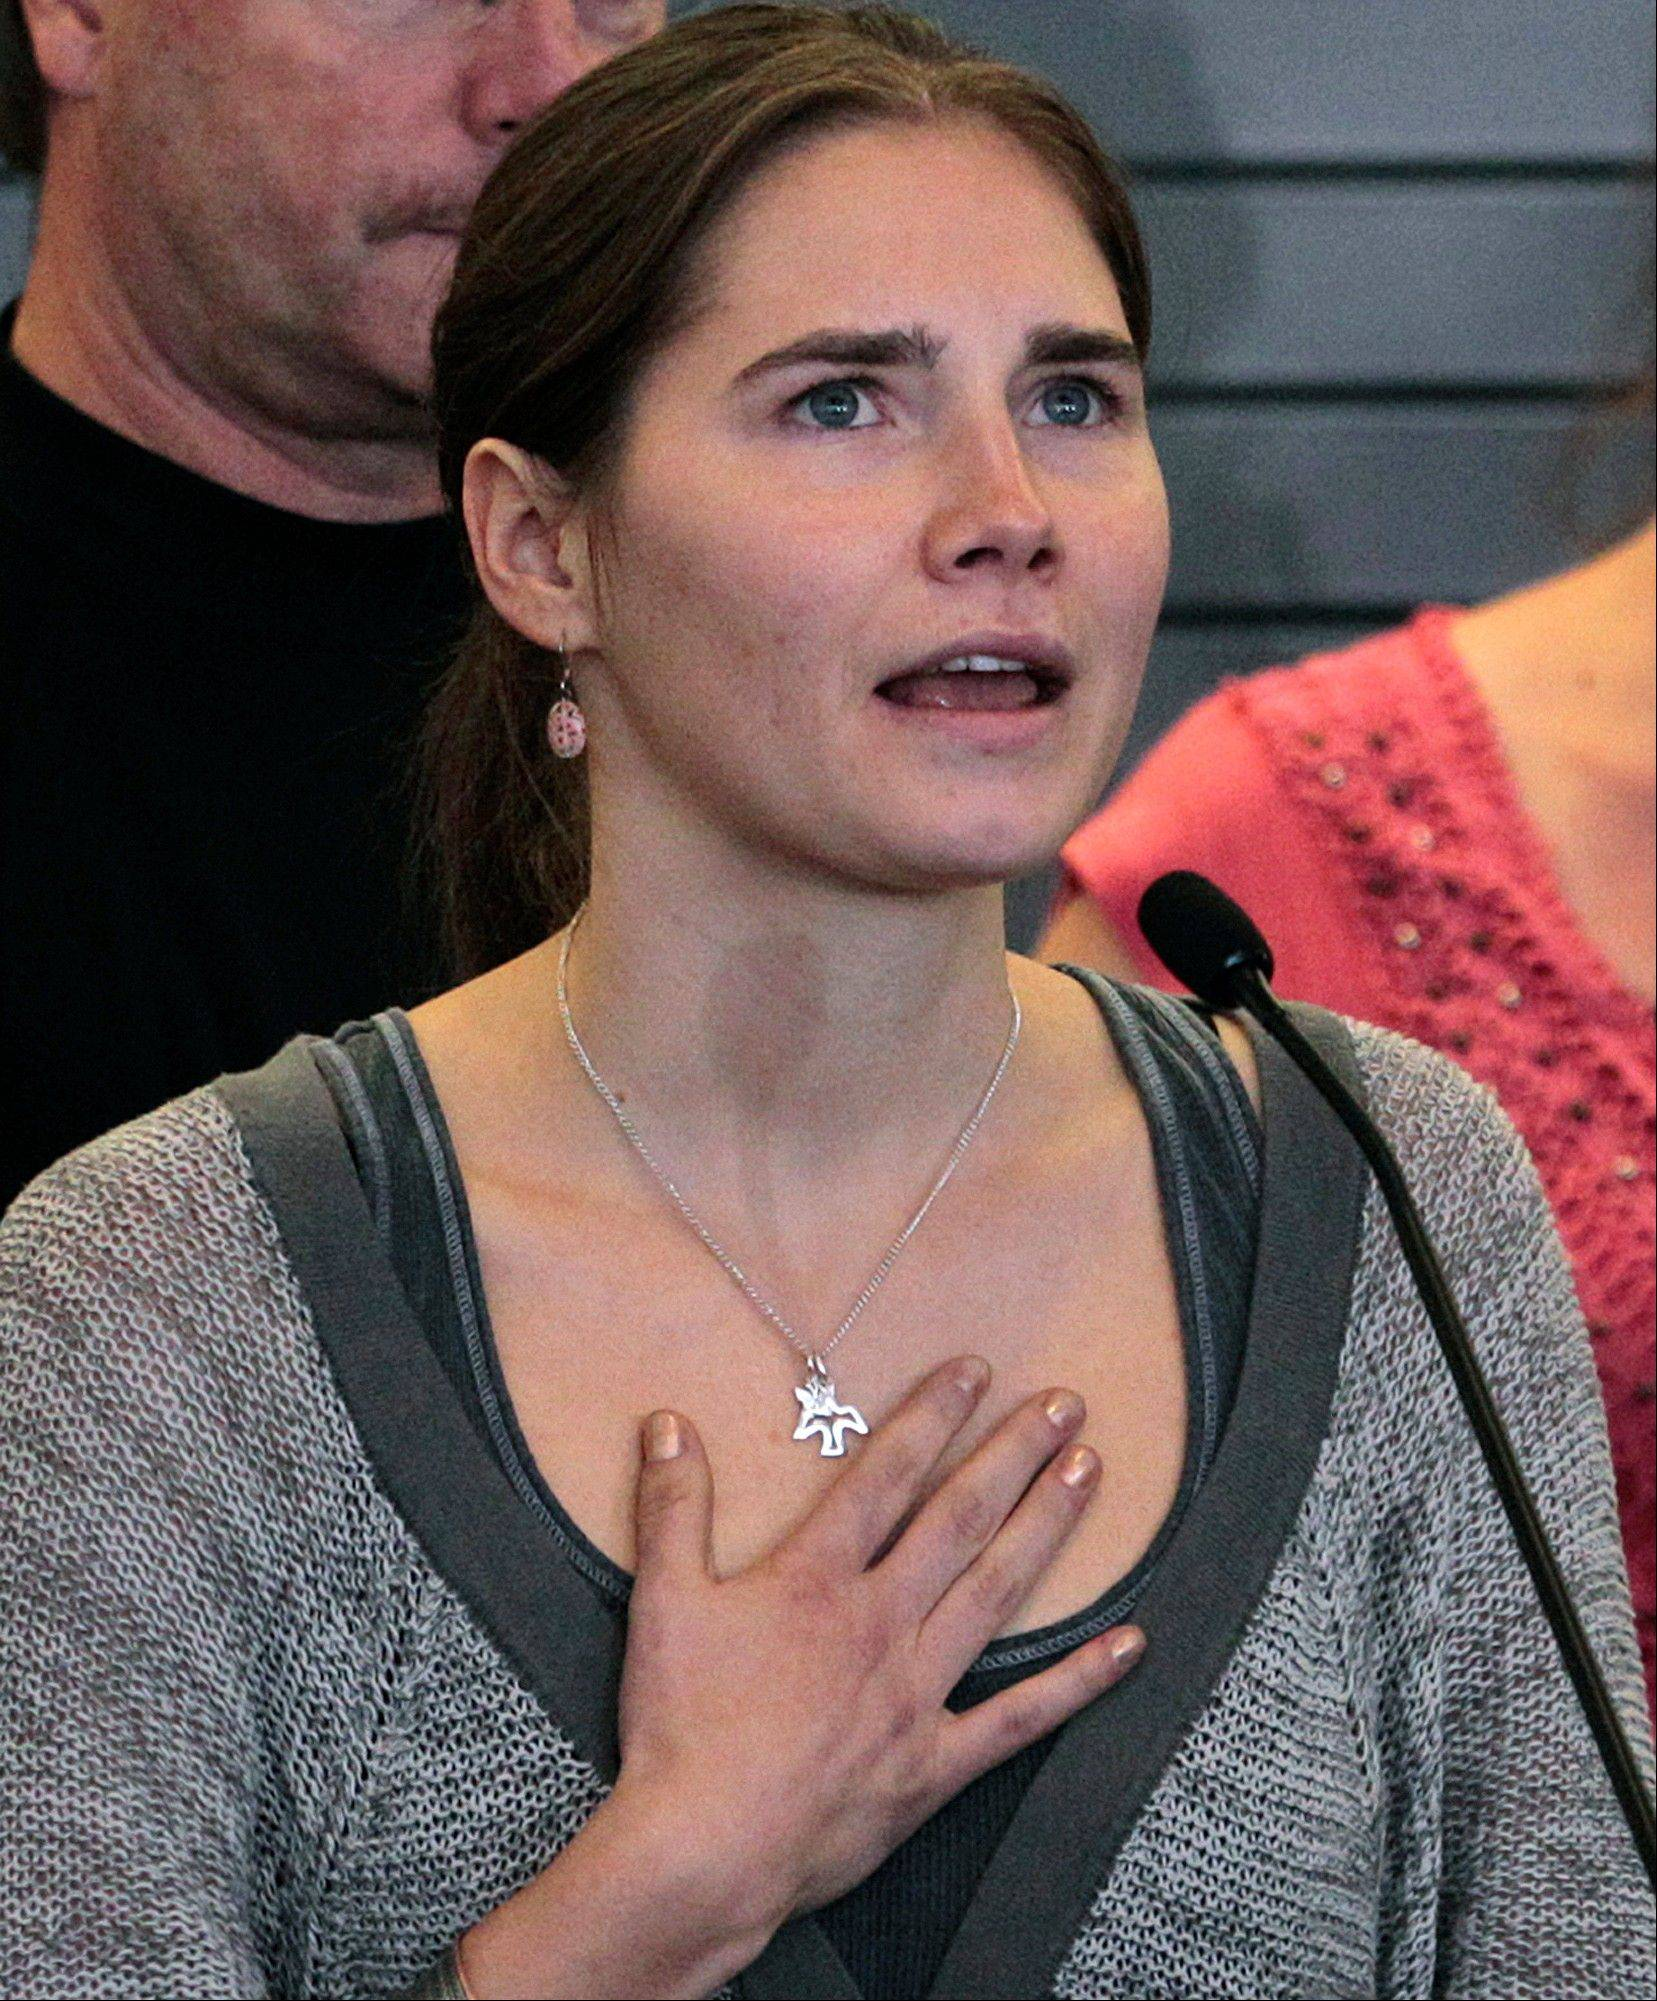 Amanda Knox declared her innocence in her roommate�s 2007 murder in a highly unusual email Tuesday to the Italian court hearing the case against her. The former U.S. exchange student also said she was staying away from the trial out of fear of being wrongly convicted.